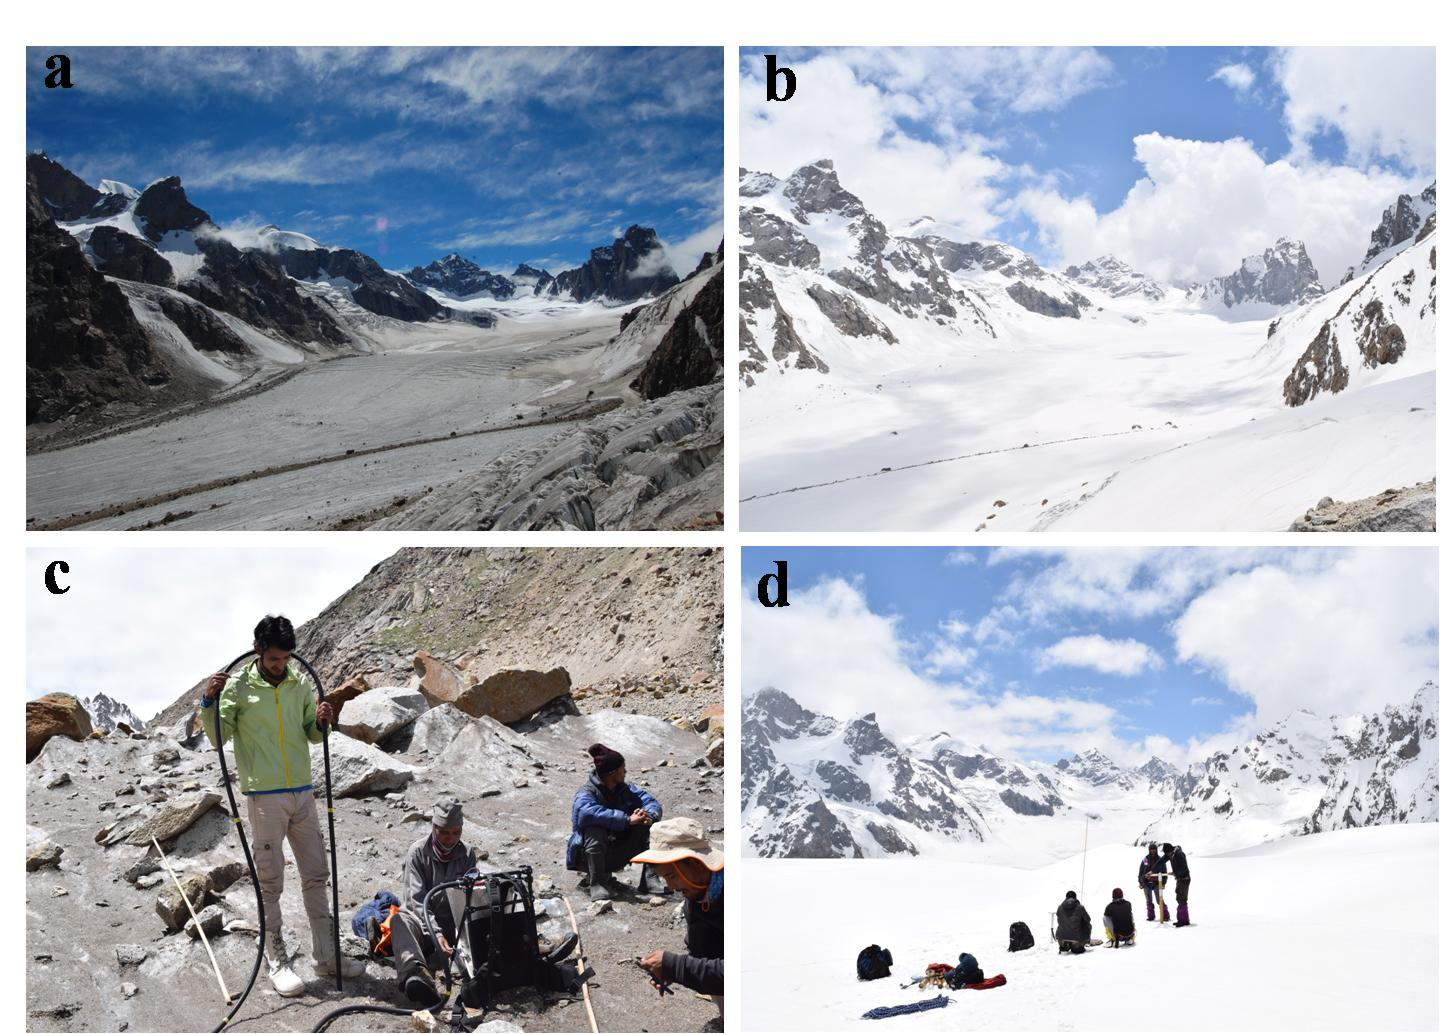 Long term monitoring on Chhota Shigri Glacier (a) accumulation zone at the end of summer (area is largely covered in dust with clearly visible medial moraine . (b) accumulation zone at the end of winter (fresh snow cover), (c) ablation stake (bamboo) installation in a partly debris covered region during the summer and, (d) drilling of snow core at top of the glacier during winter (Credit: Arindan Mandal/JNU).